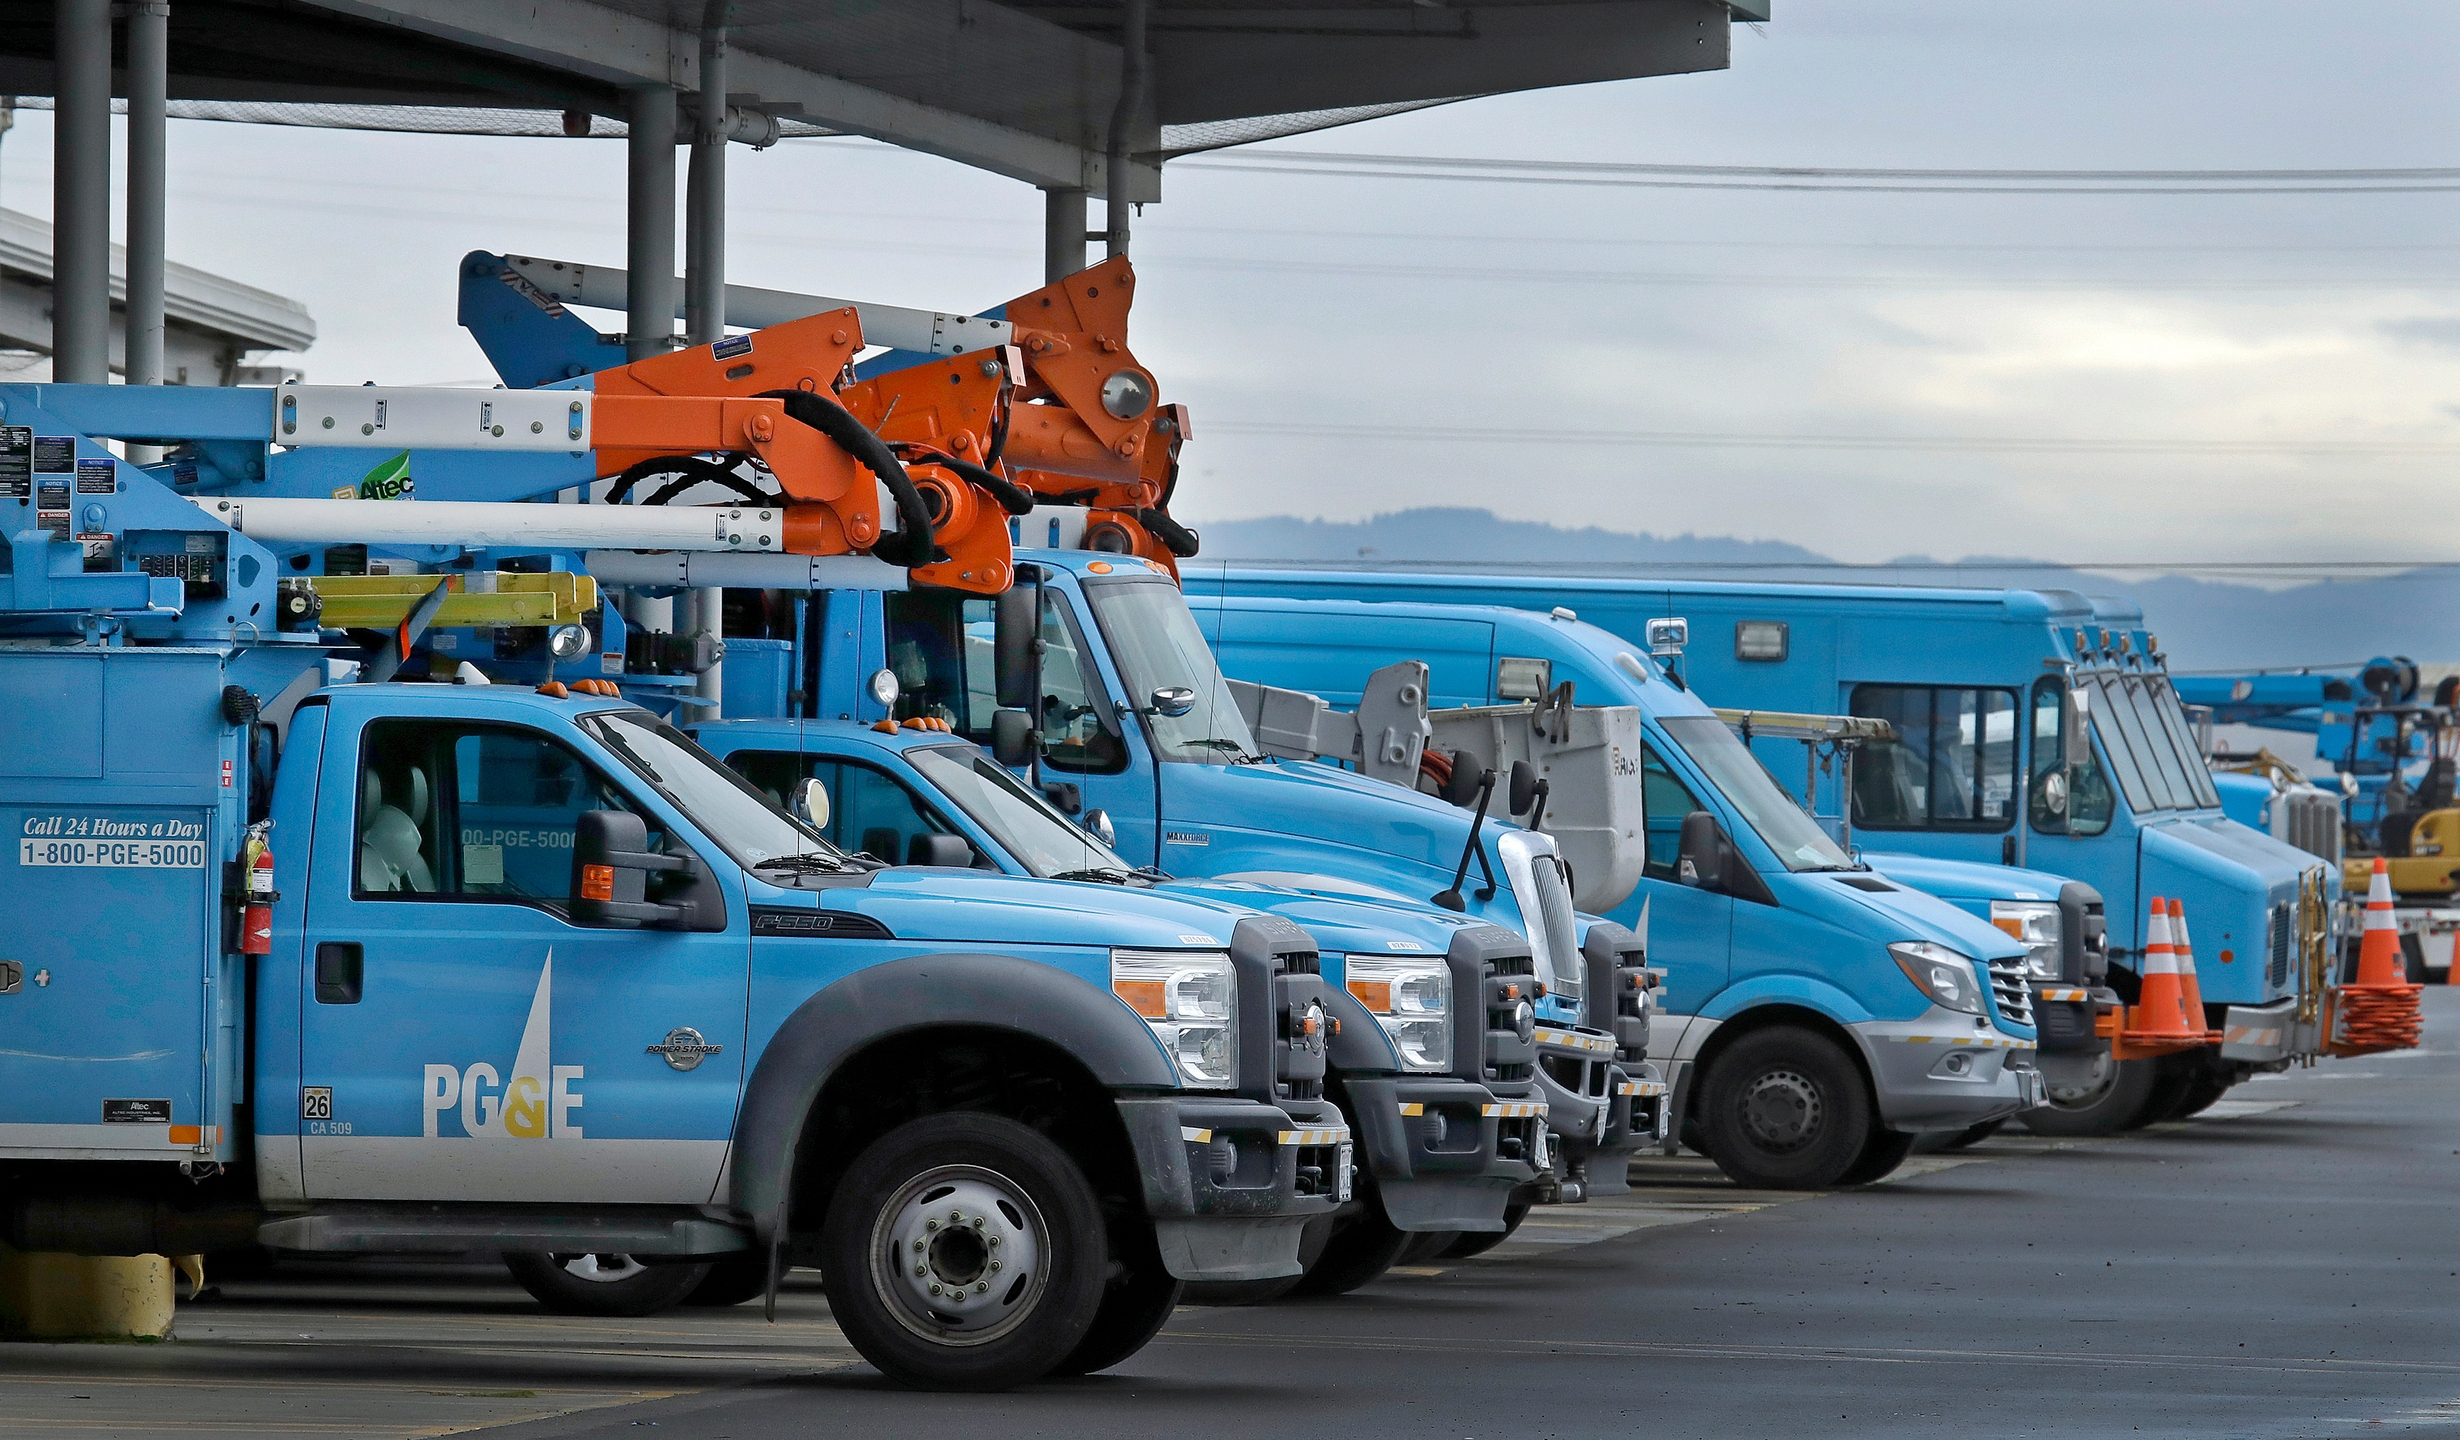 PG&E Work Vehicles